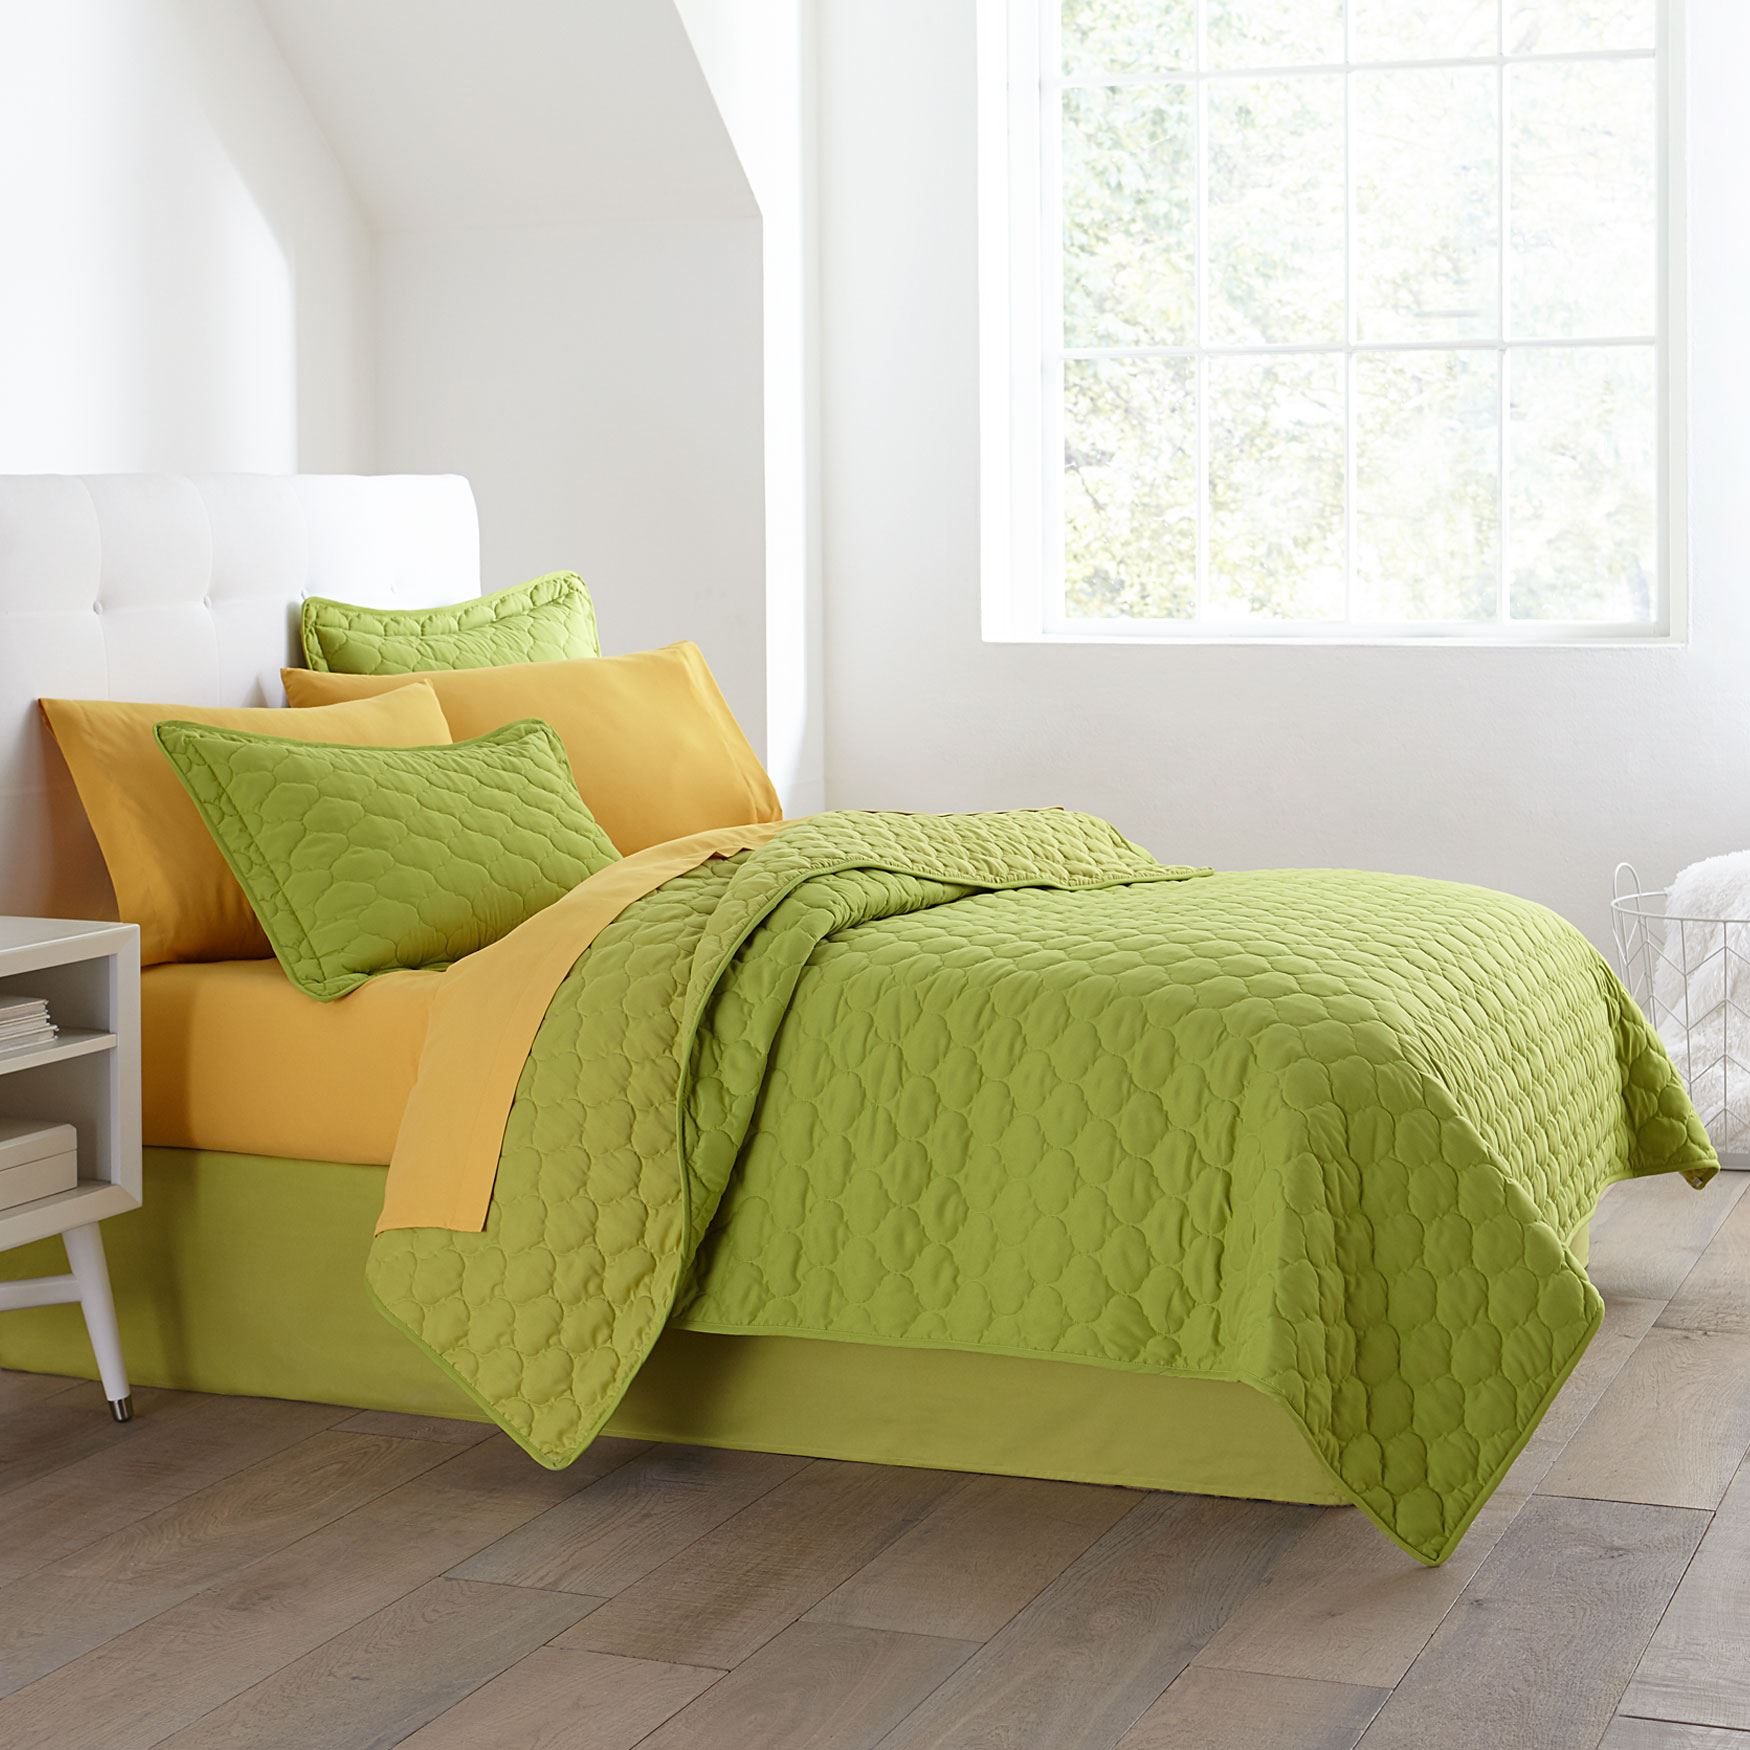 Awesome BrylaneHome® Studio Quilt Collection,